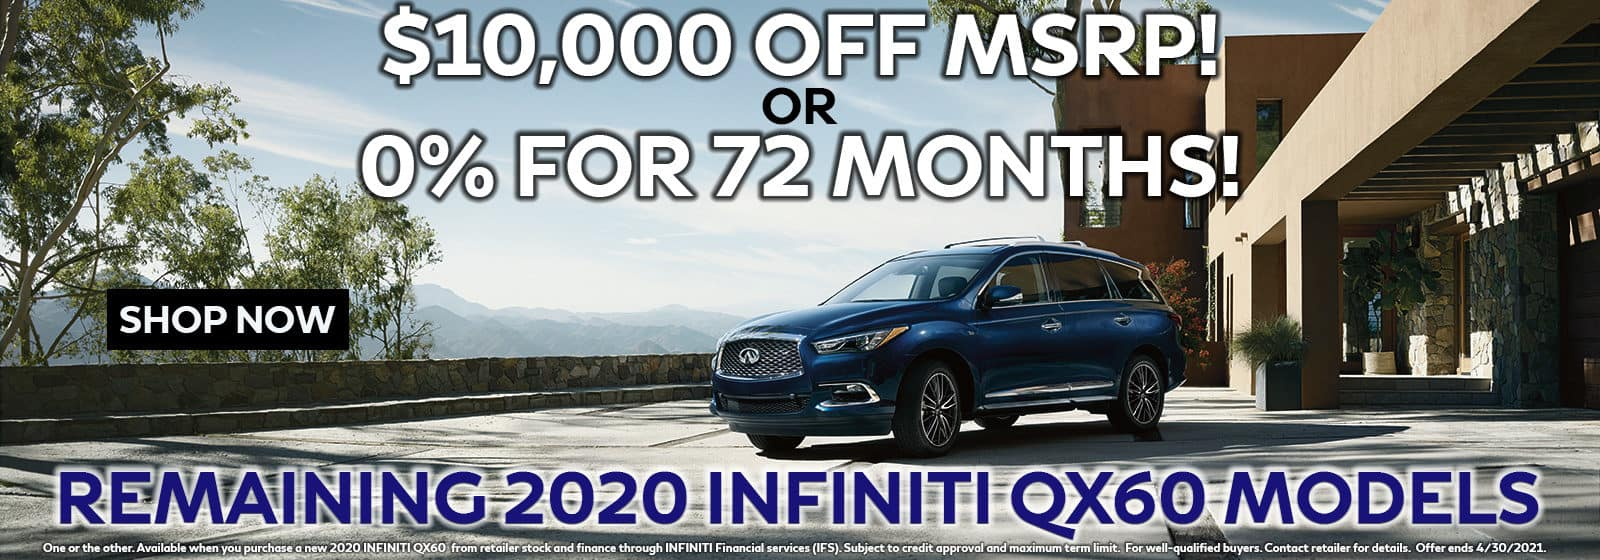 2020 QX60 $10,000 OFF MSRP or 0% for 72 Months